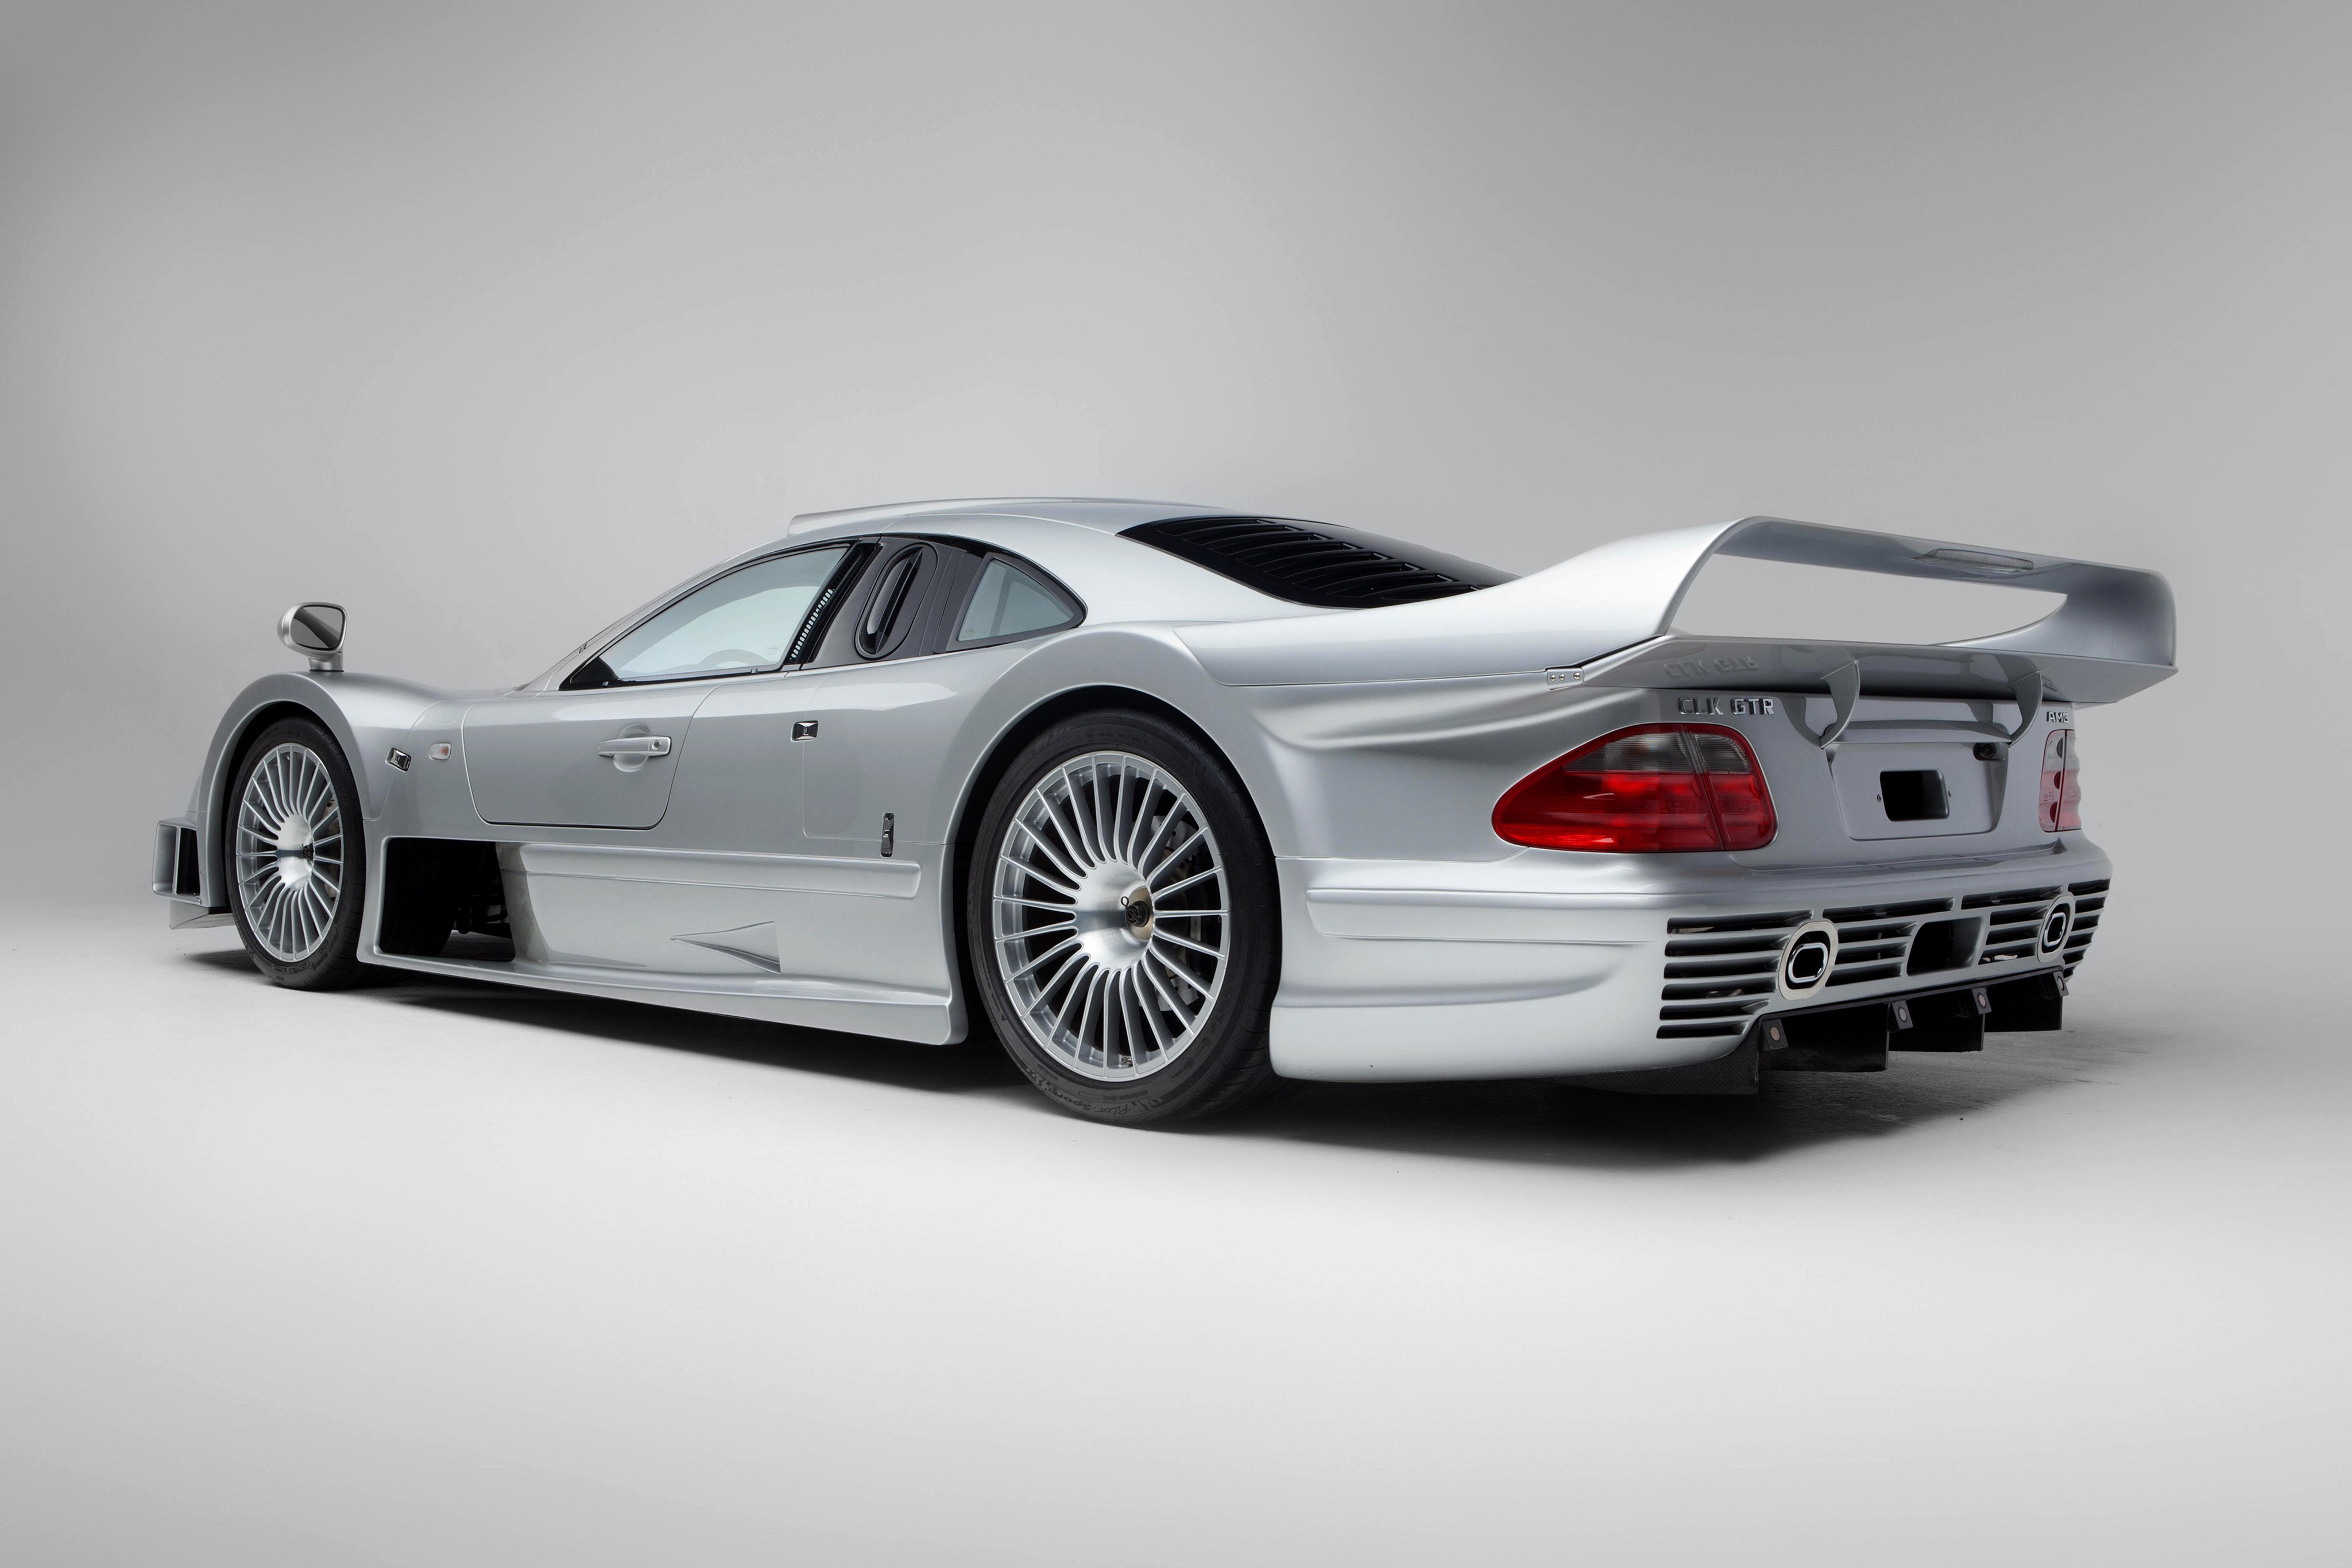 1997 99 mercedes benz clk gtr amg coupe strassenversion for Mercedes benz race